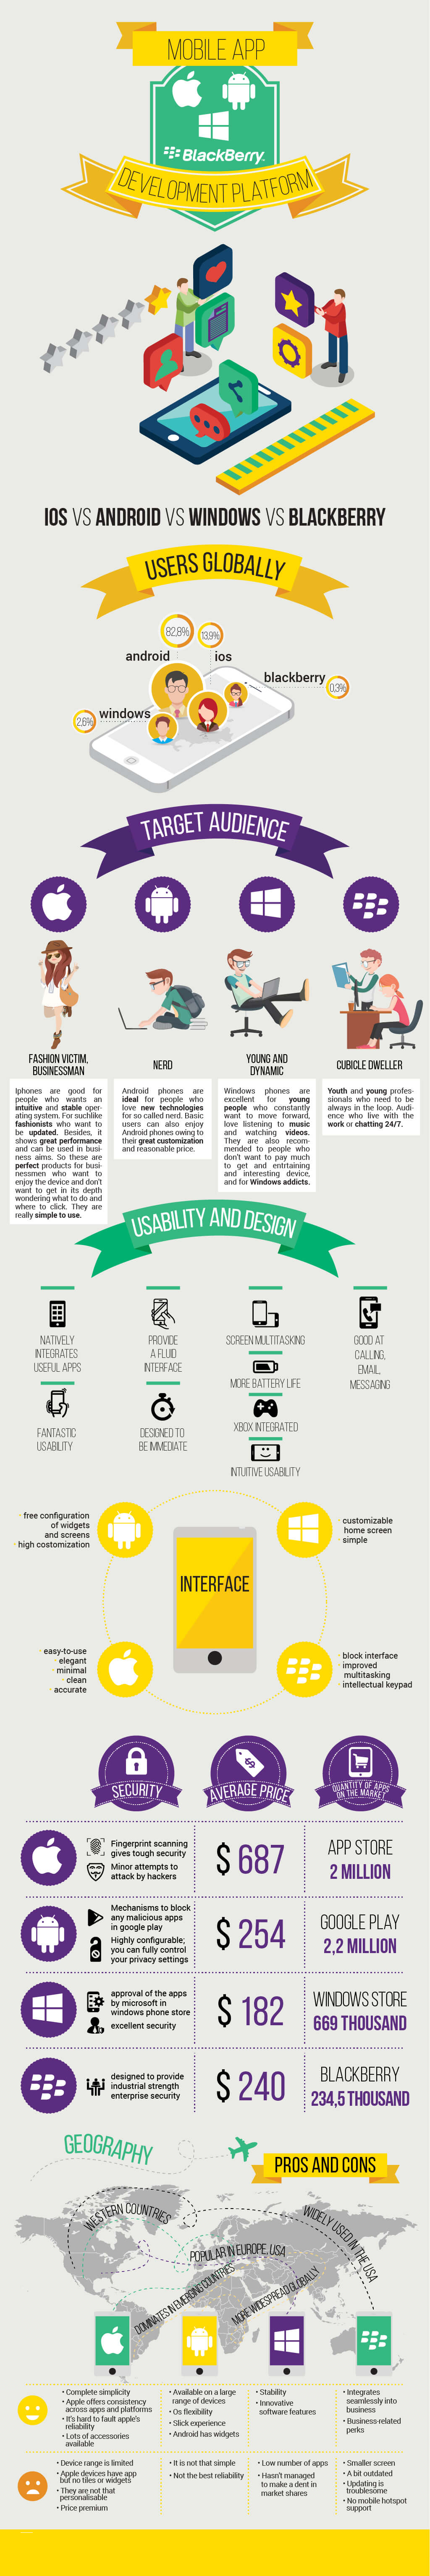 mobile app development platform infographic